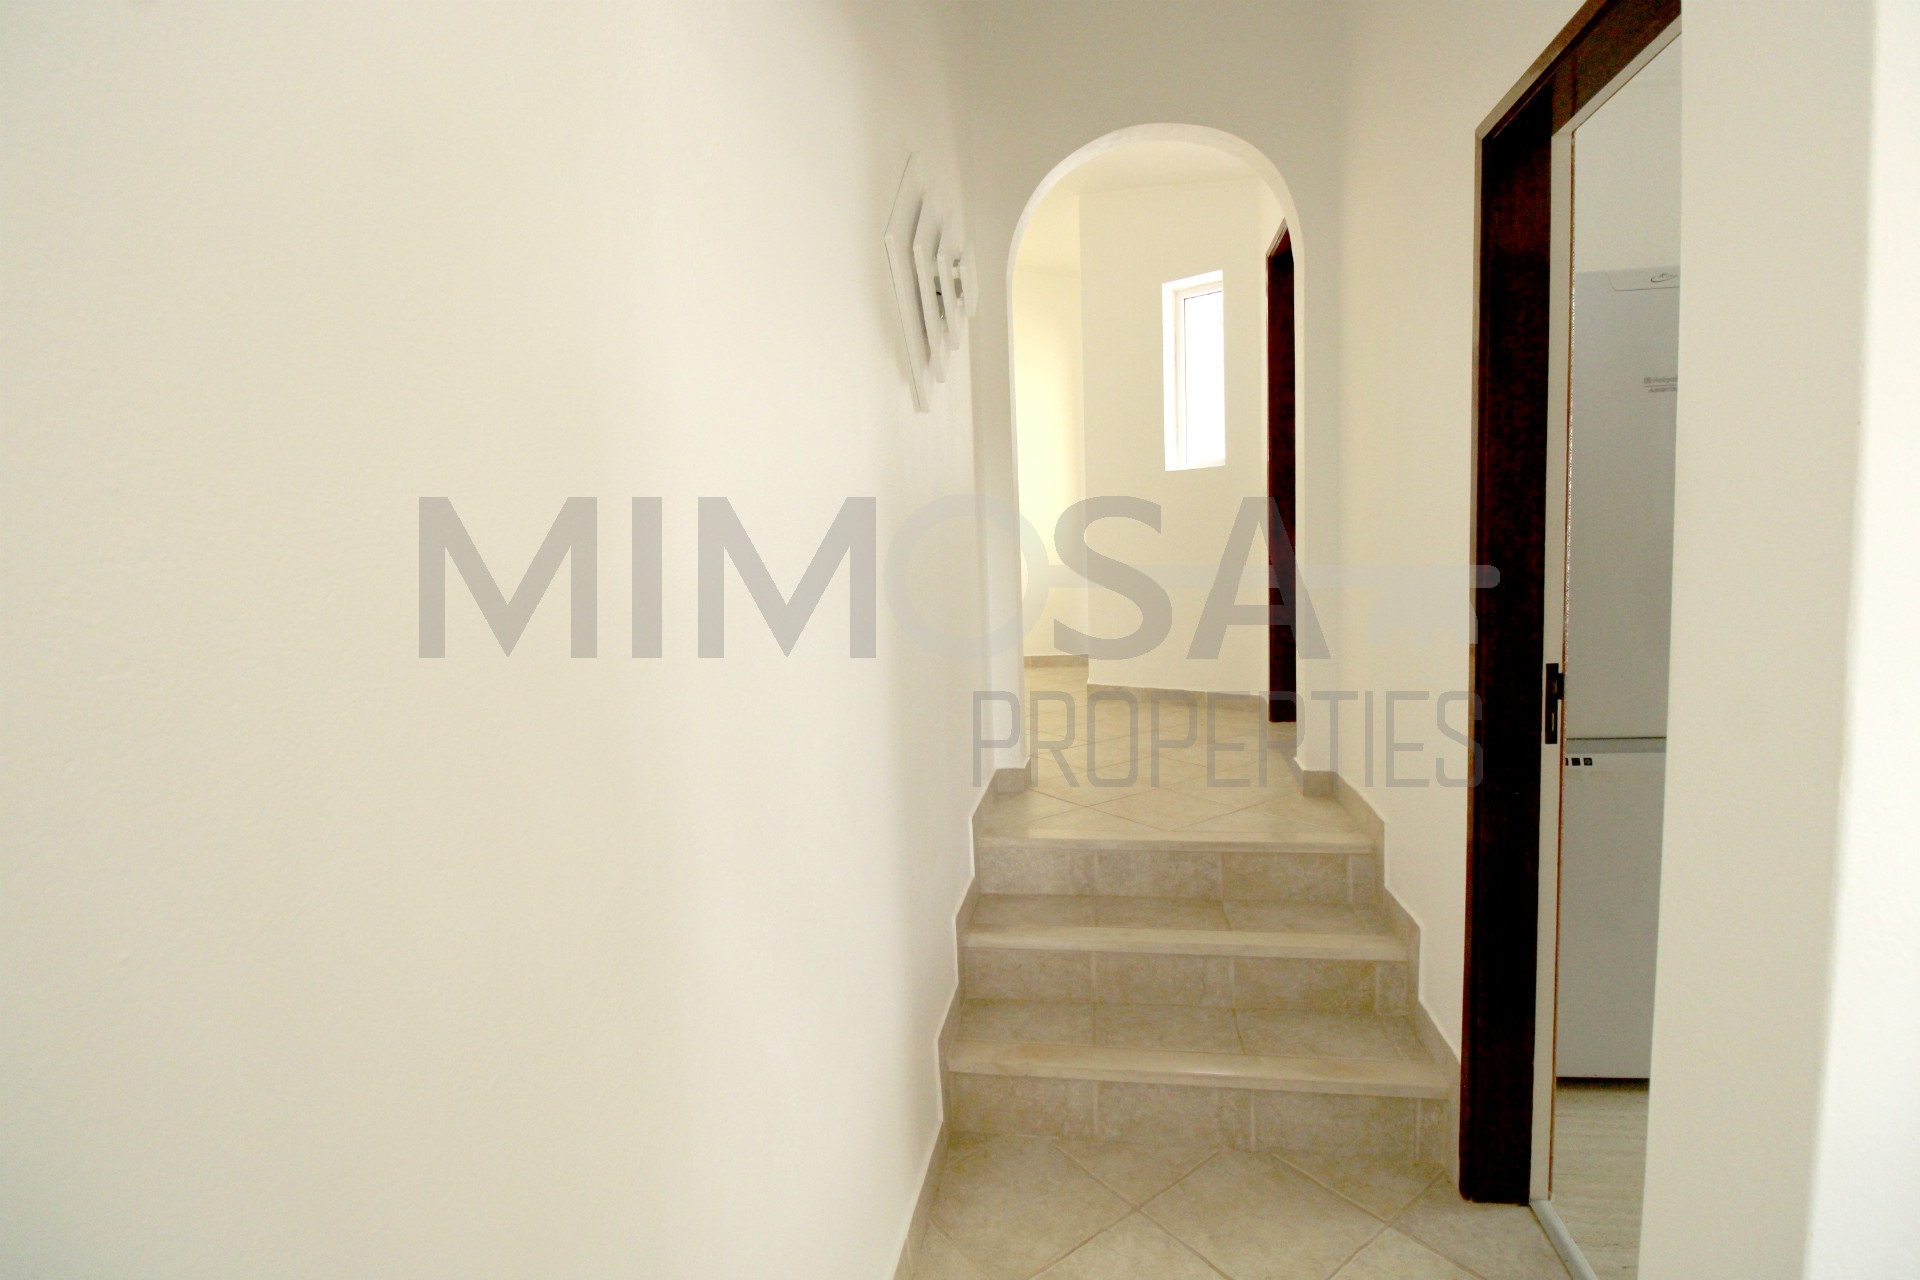 Mimosaproperties - Imobiliára / Real Estate / Makelaars